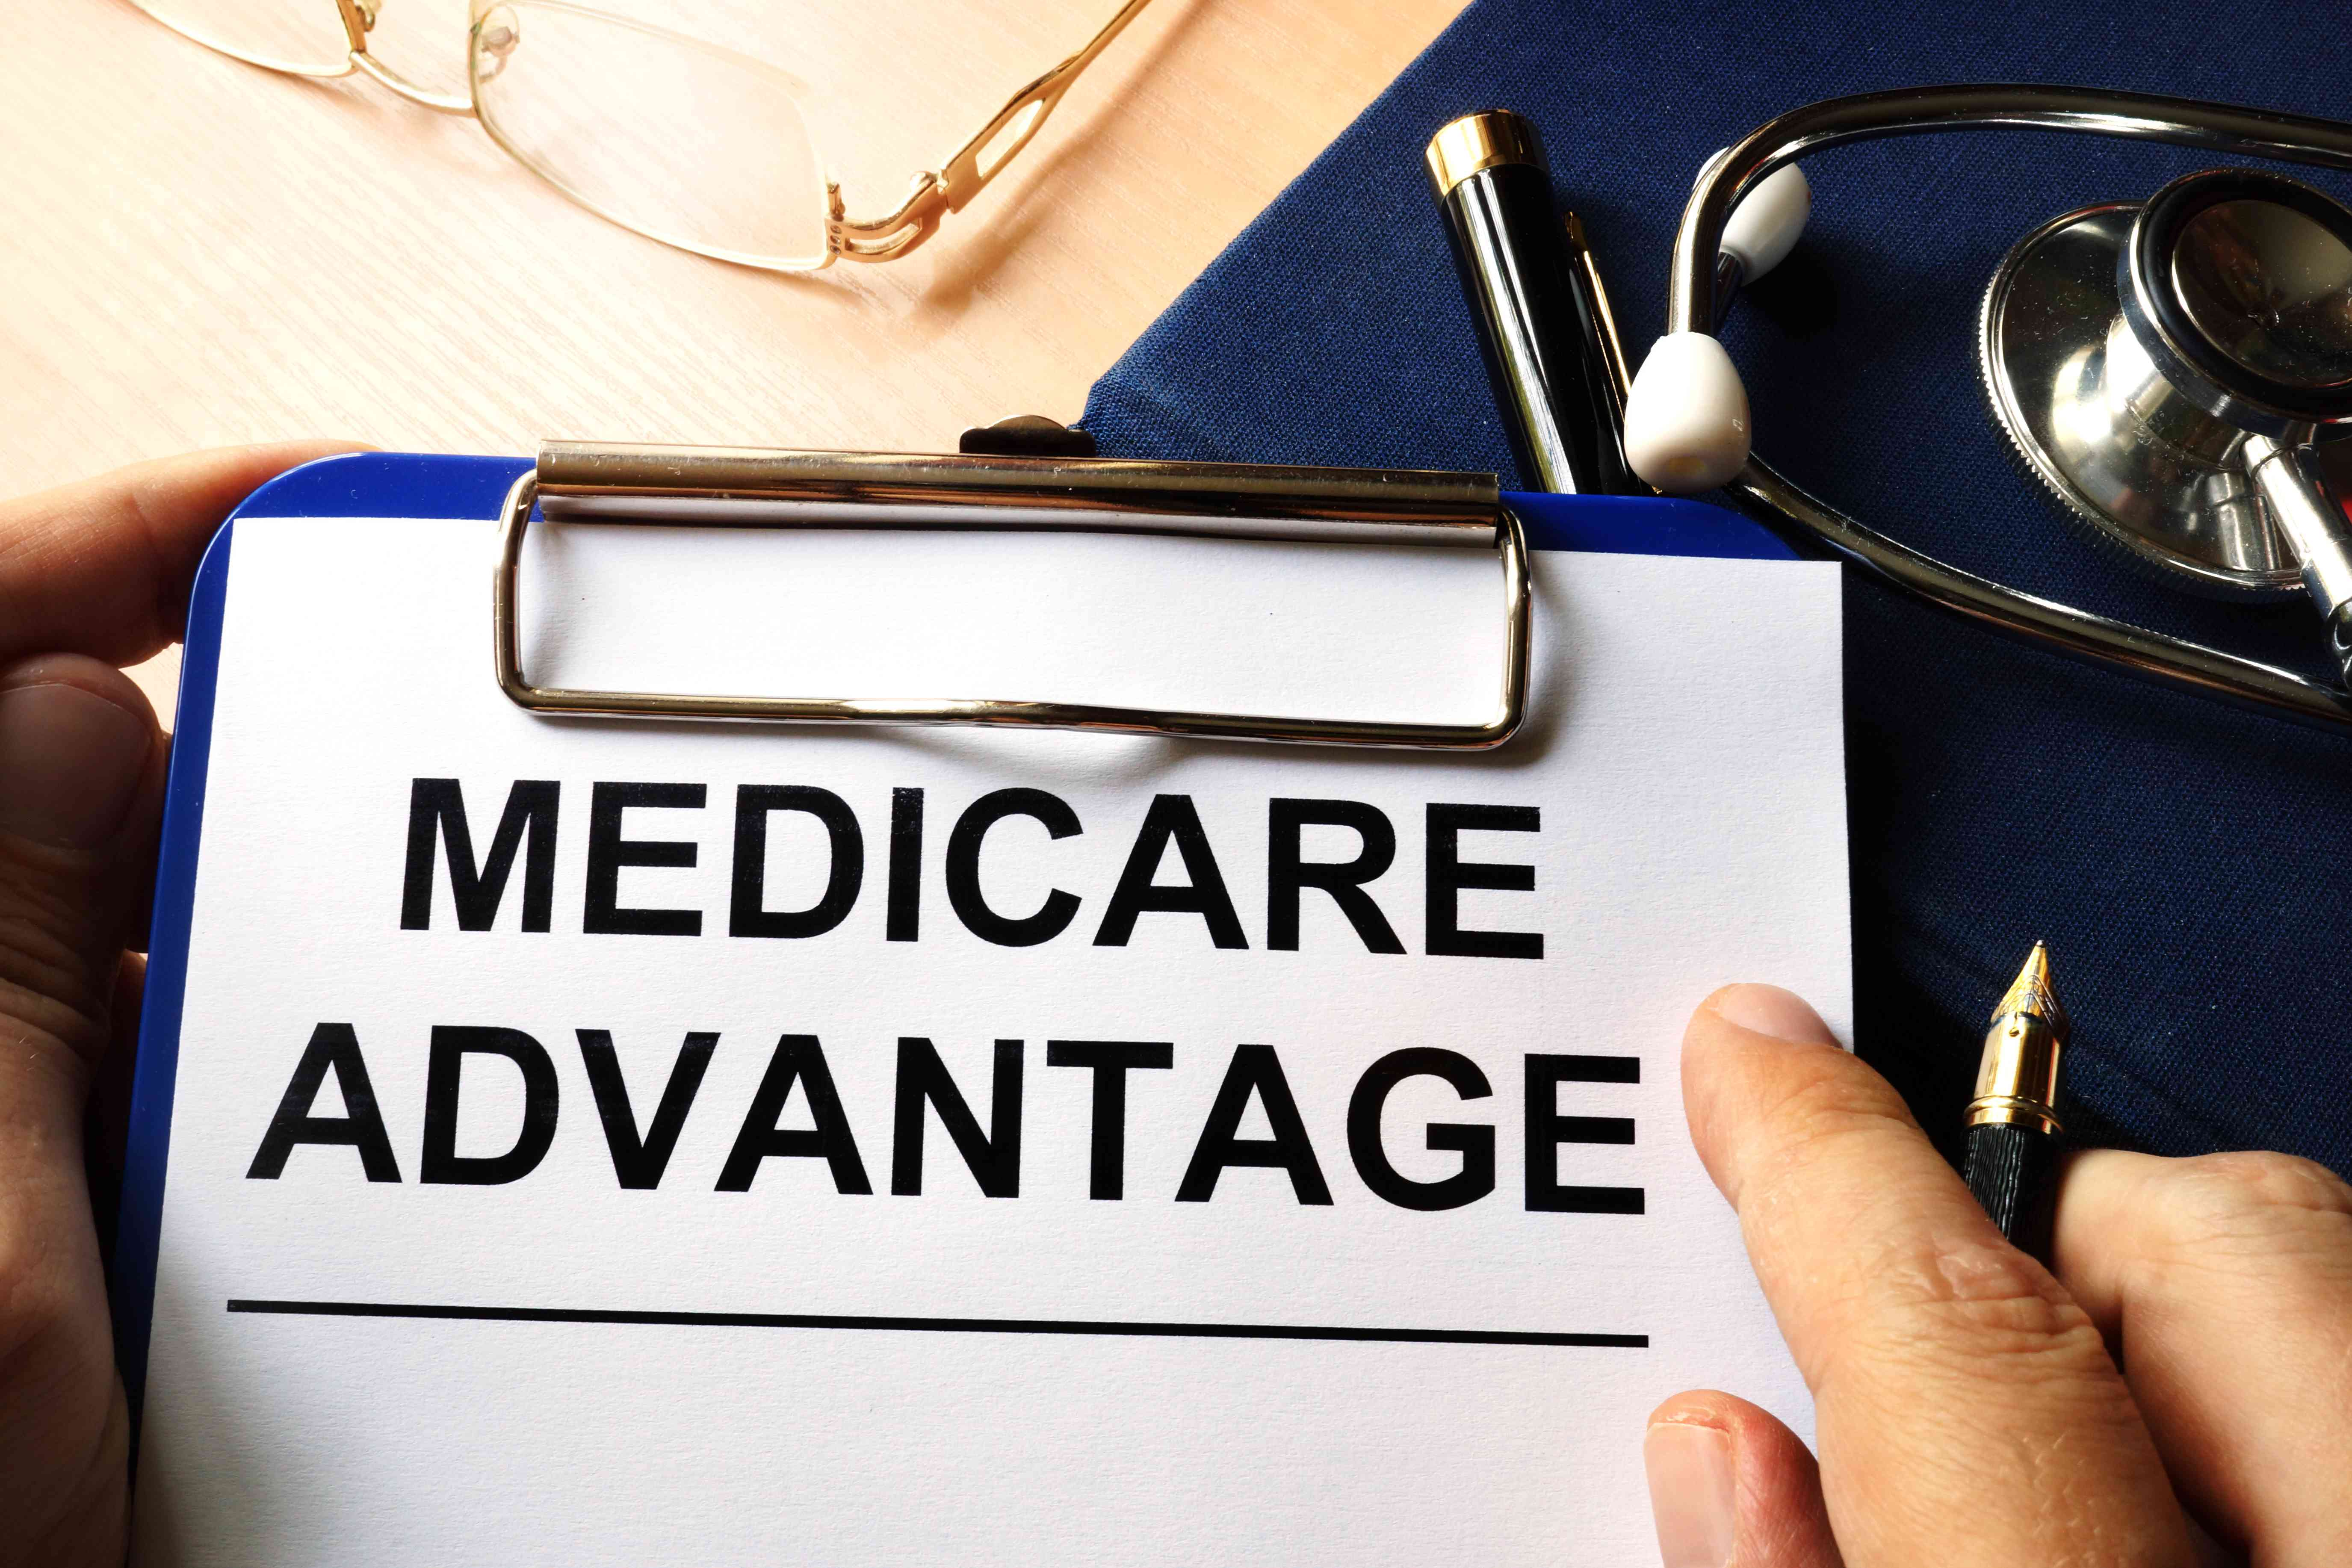 are you required to have medical insurance